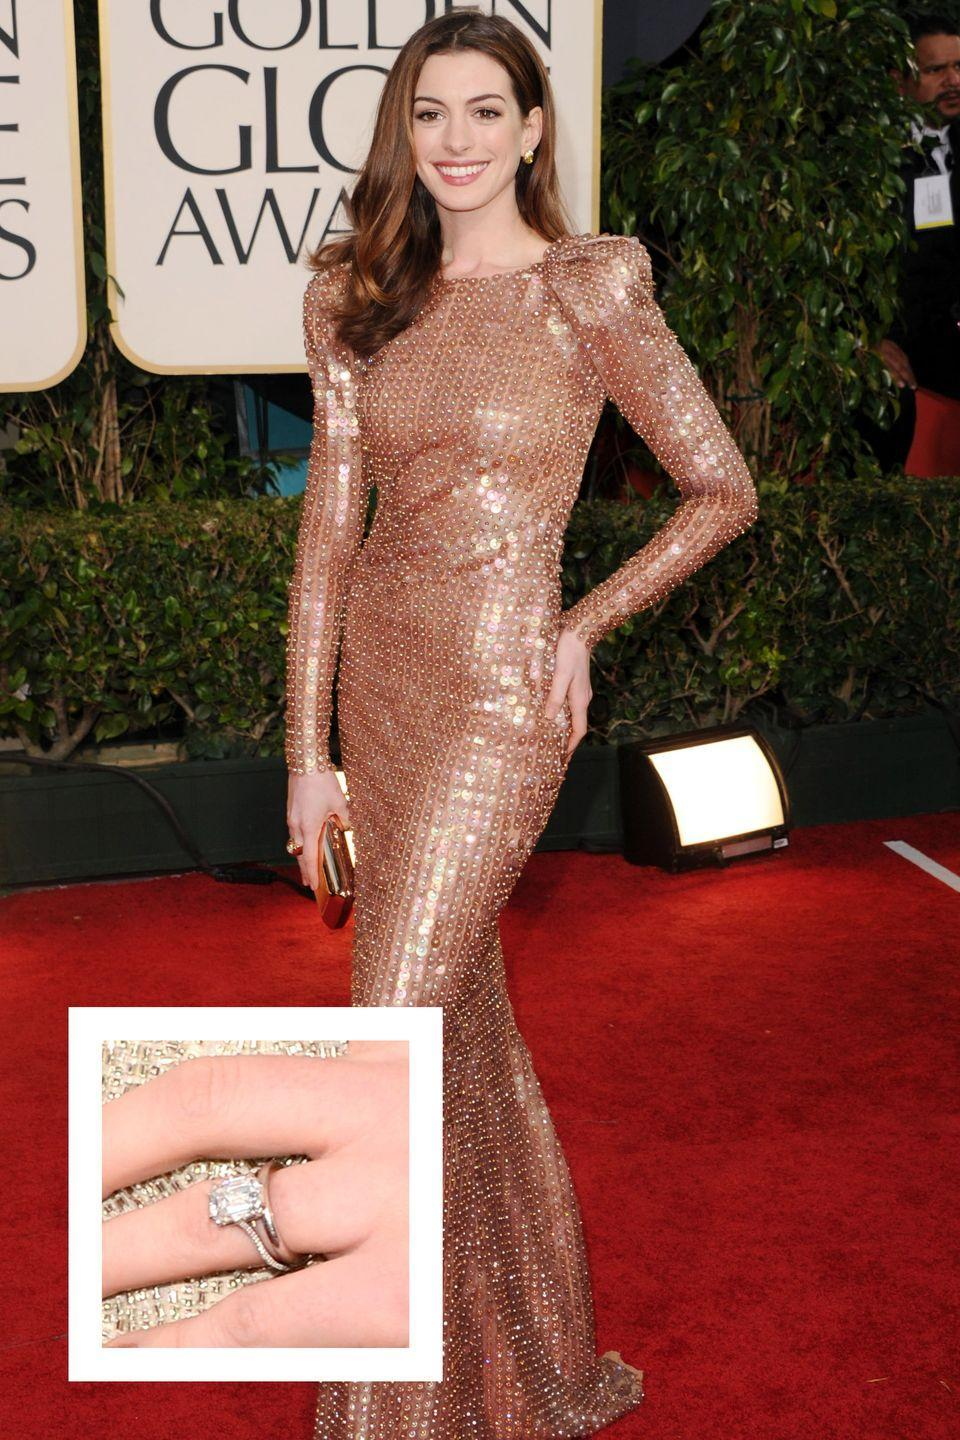 """<p>Adam Shulman propose to Hathaway in a November 2011 with a diamond ring he designed himself along with Kwiat Jewelers, <a href=""""http://people.com/style/photo-see-anne-hathaways-engagement-ring-up-close/"""" rel=""""nofollow noopener"""" target=""""_blank"""" data-ylk=""""slk:People reports."""" class=""""link rapid-noclick-resp""""><em>People </em>reports.</a> The ring is set with a six carat emerald-cut conflict-free diamond on a diamond-studded band. The ring's value is estimated to be $150,000, <a href=""""https://www.vogue.com/article/best-celebrity-engagement-rings-kim-kardashian-kate-middleton"""" rel=""""nofollow noopener"""" target=""""_blank"""" data-ylk=""""slk:according to Vogue."""" class=""""link rapid-noclick-resp"""">according to <em>Vogue.</em></a></p>"""